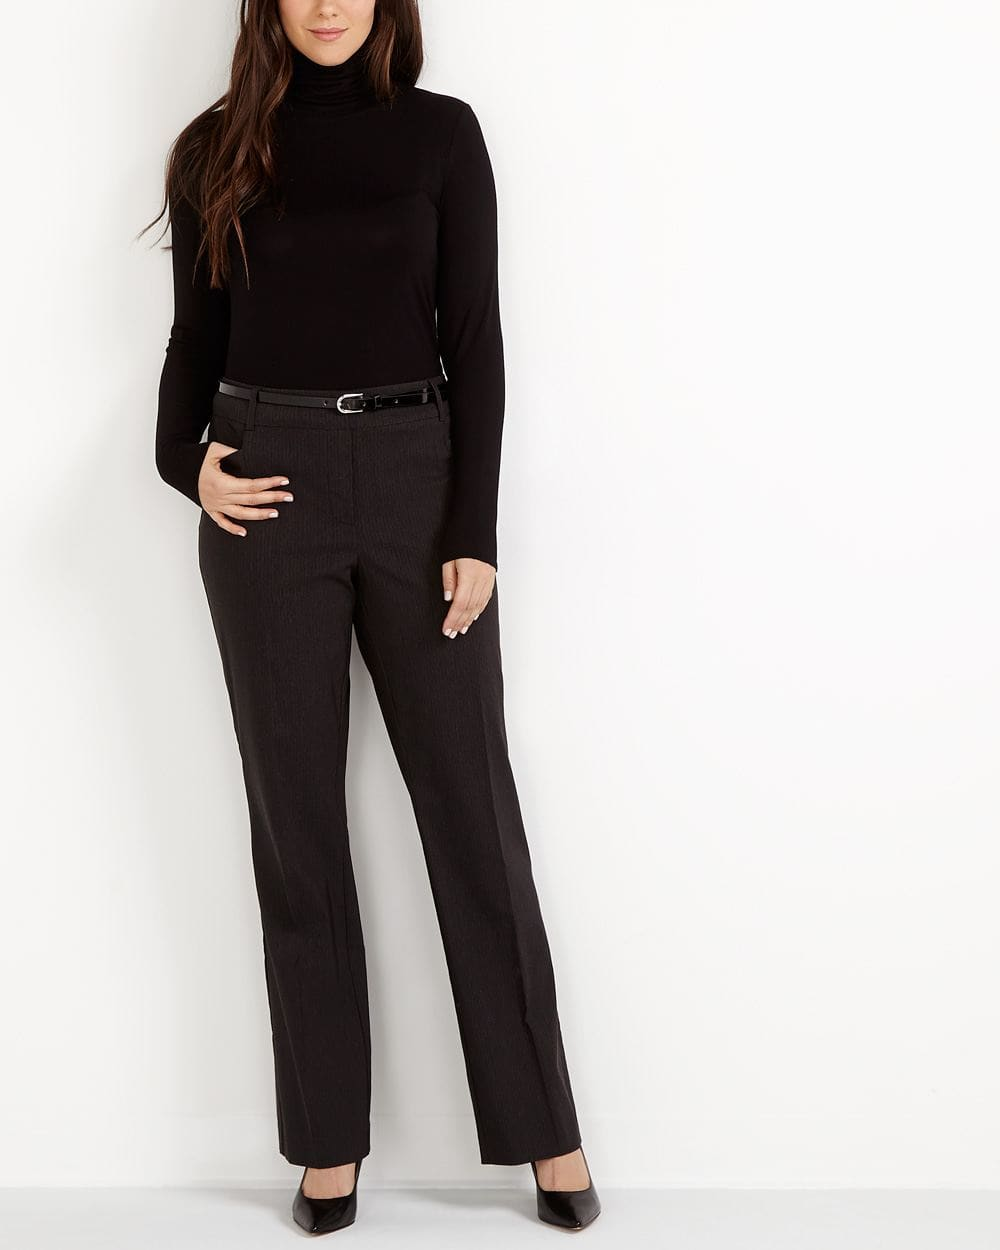 The Tall Iconic Boot Cut Striped Pants